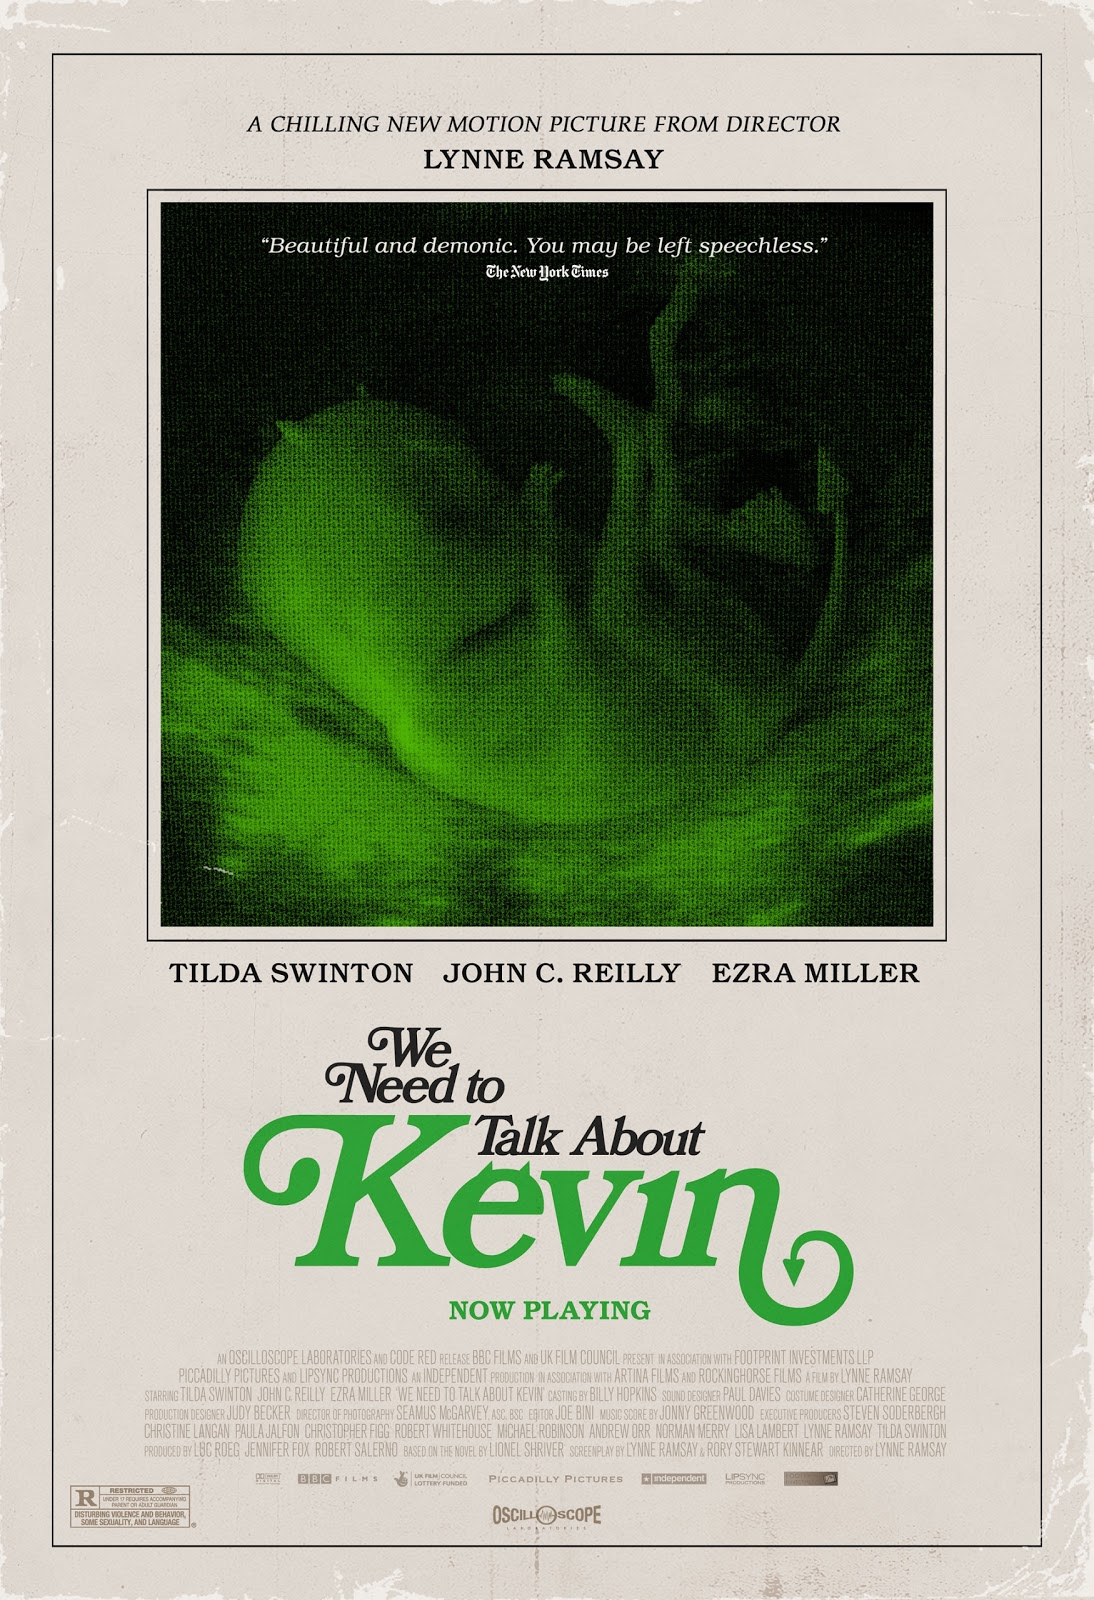 http://3.bp.blogspot.com/-Hdm74C8oyWY/TywQIMFCxsI/AAAAAAAAC6k/McSpNX6yqjg/s1600/We-Need-to-Talk-About-Kevin-poster-devil.jpg